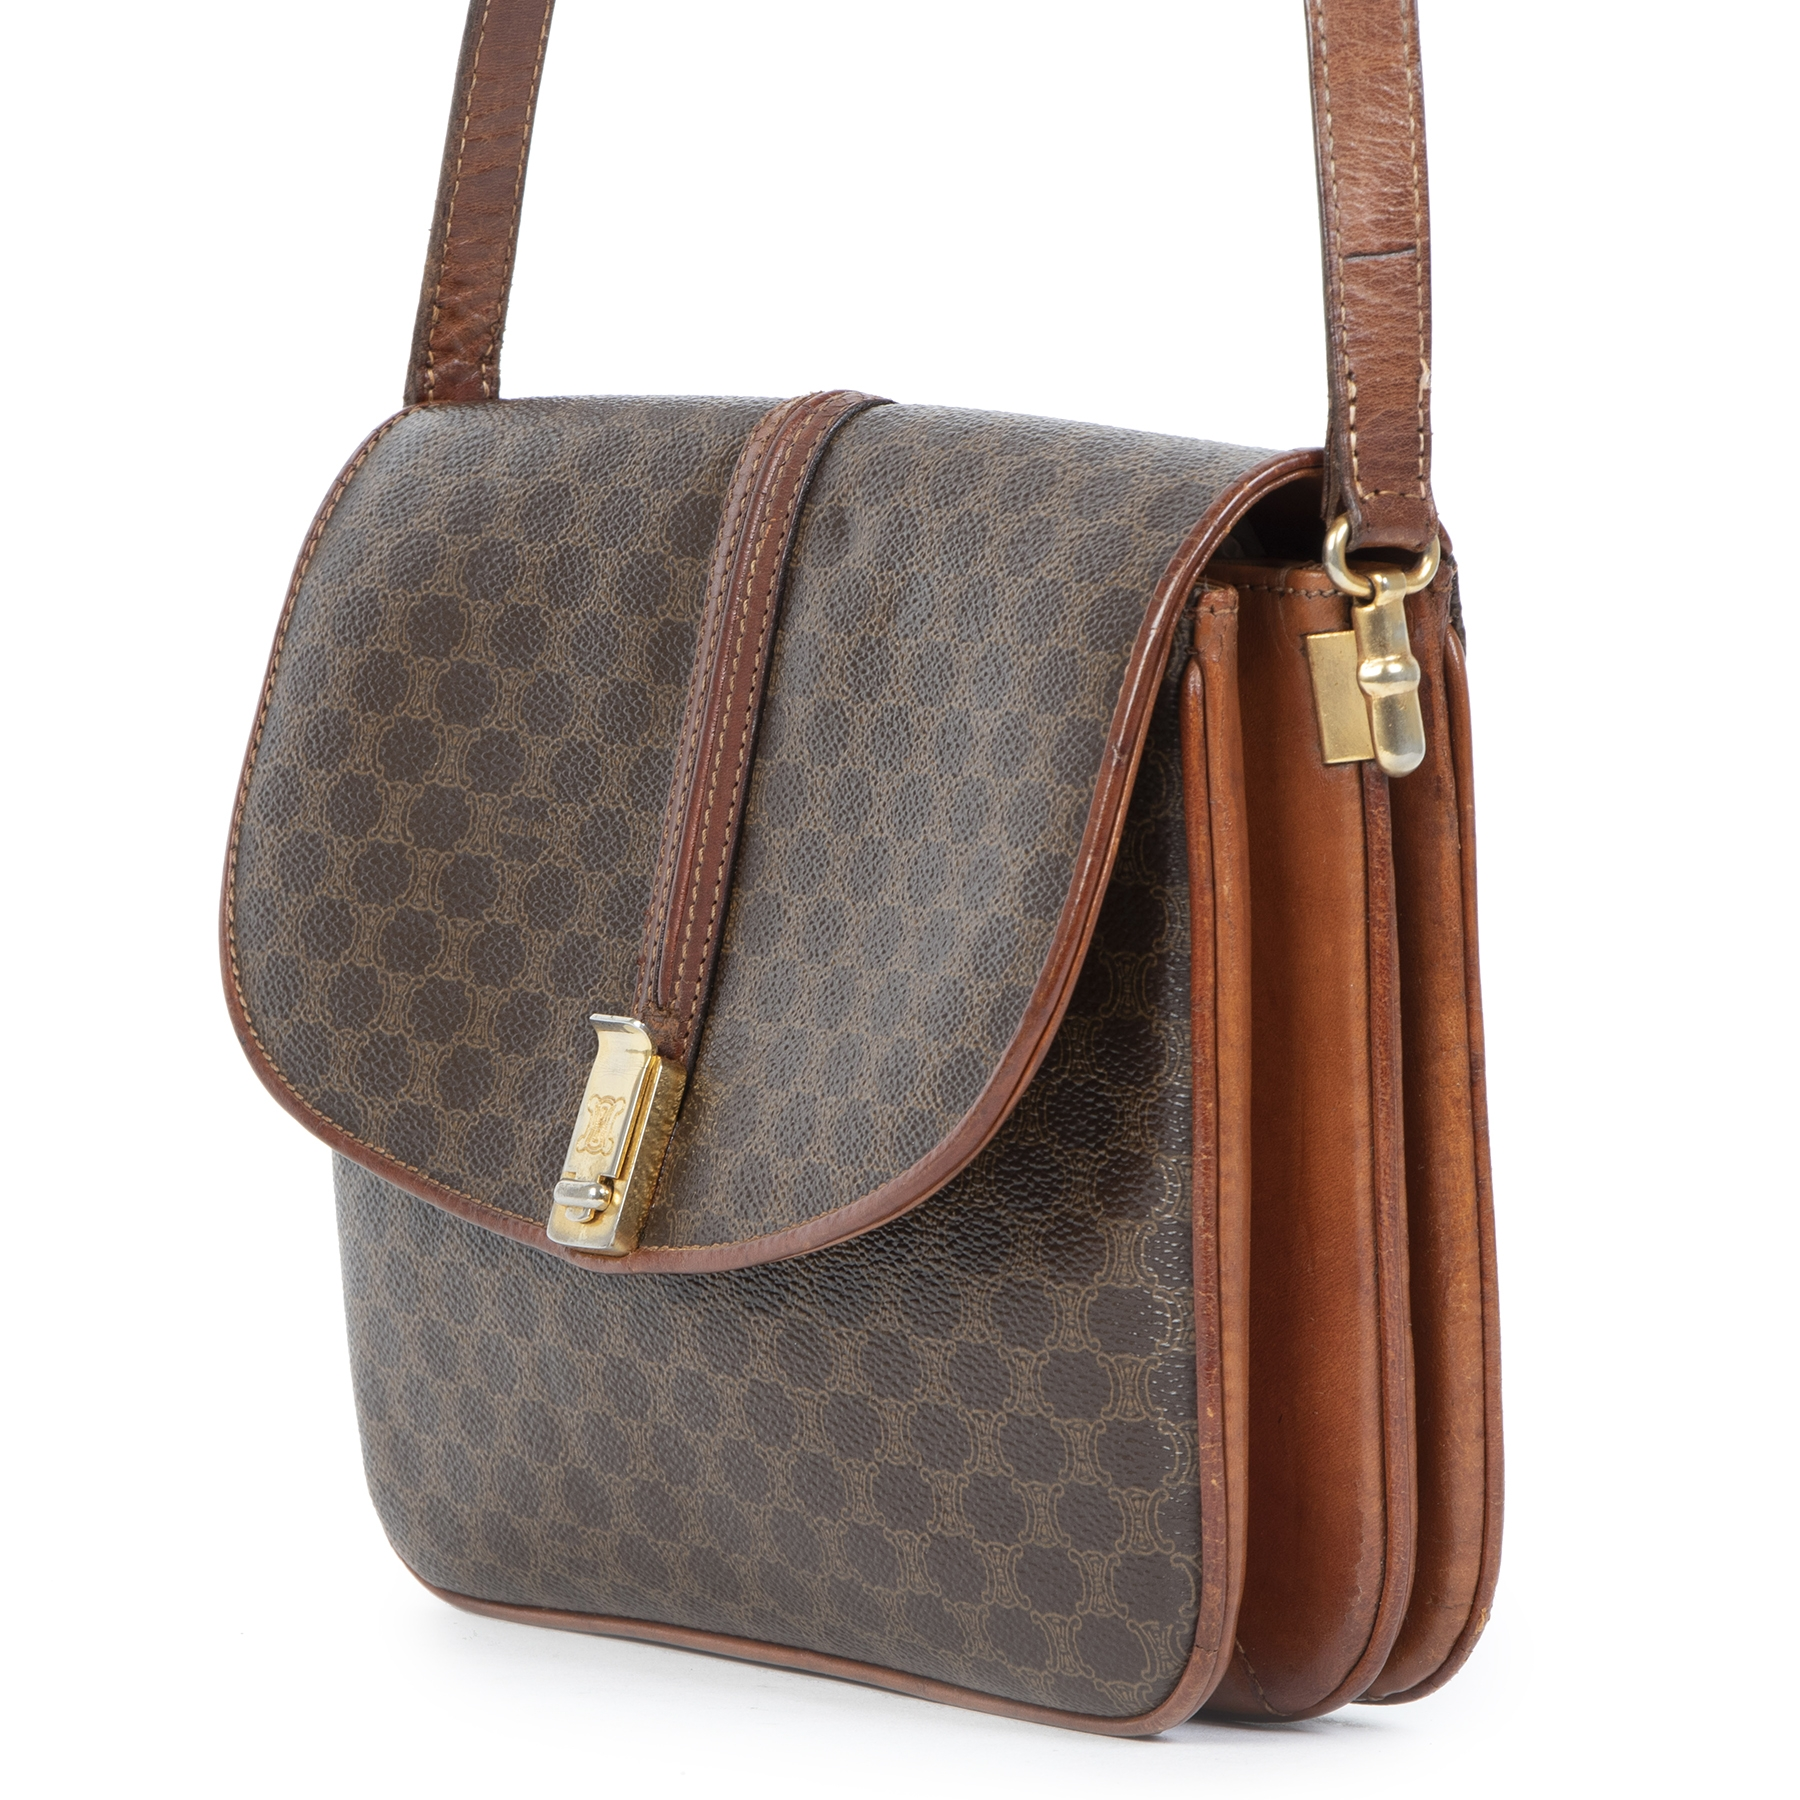 Authentic Secondhand Celine Monogram Crossbody Bag at the right price safe and secure online webshop LabelLOV Antwerp